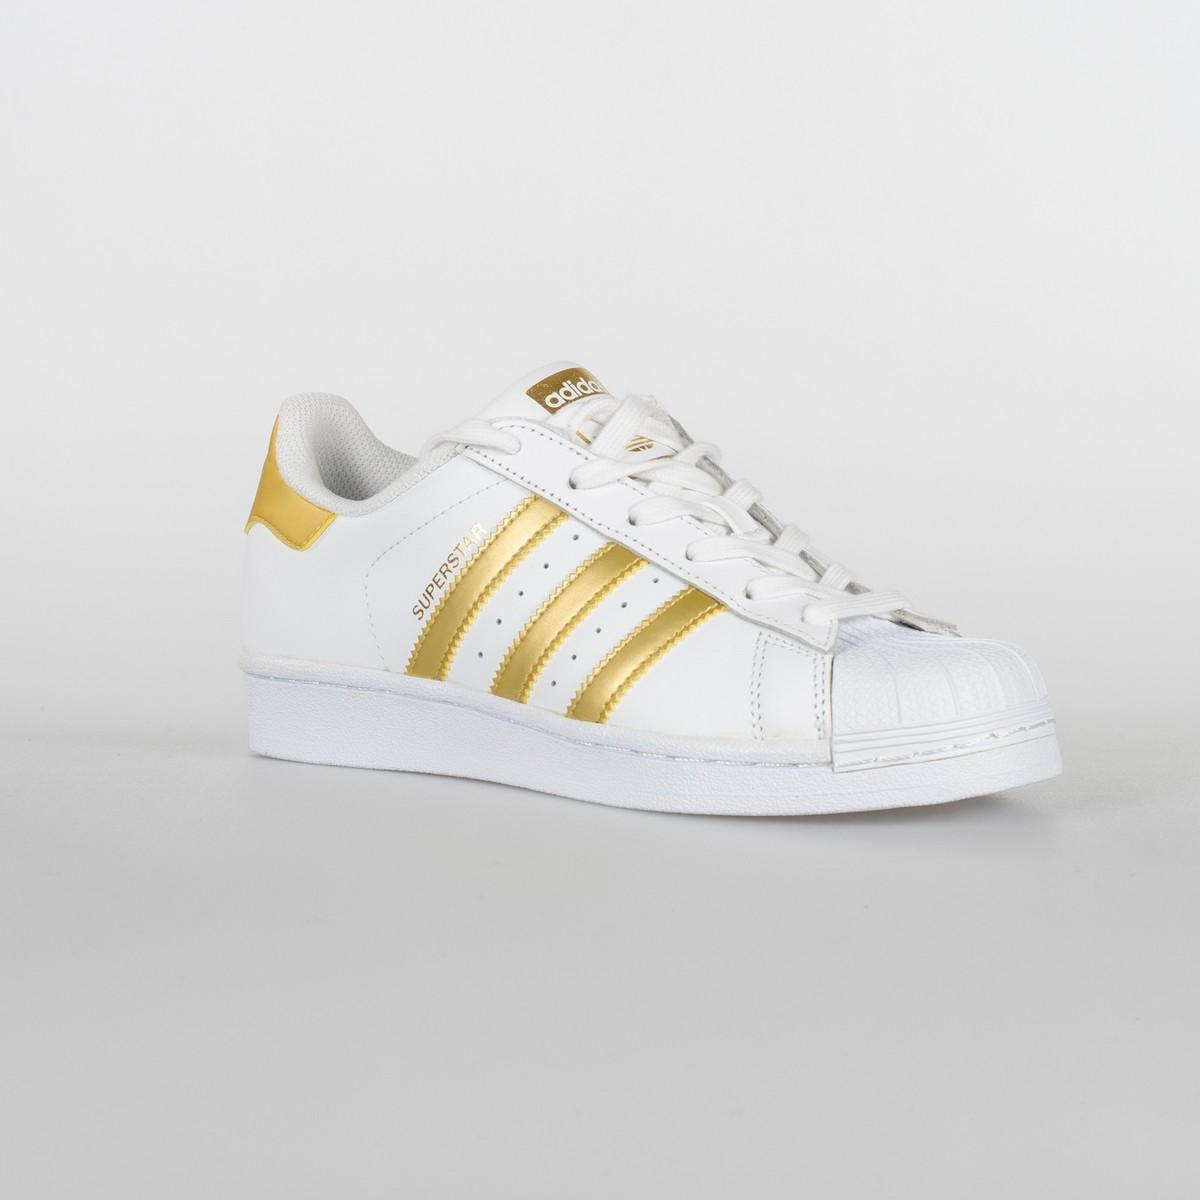 SCARPA UNISEX ADIDAS SUPERSTAR J BB2870 WHITE/GOLD